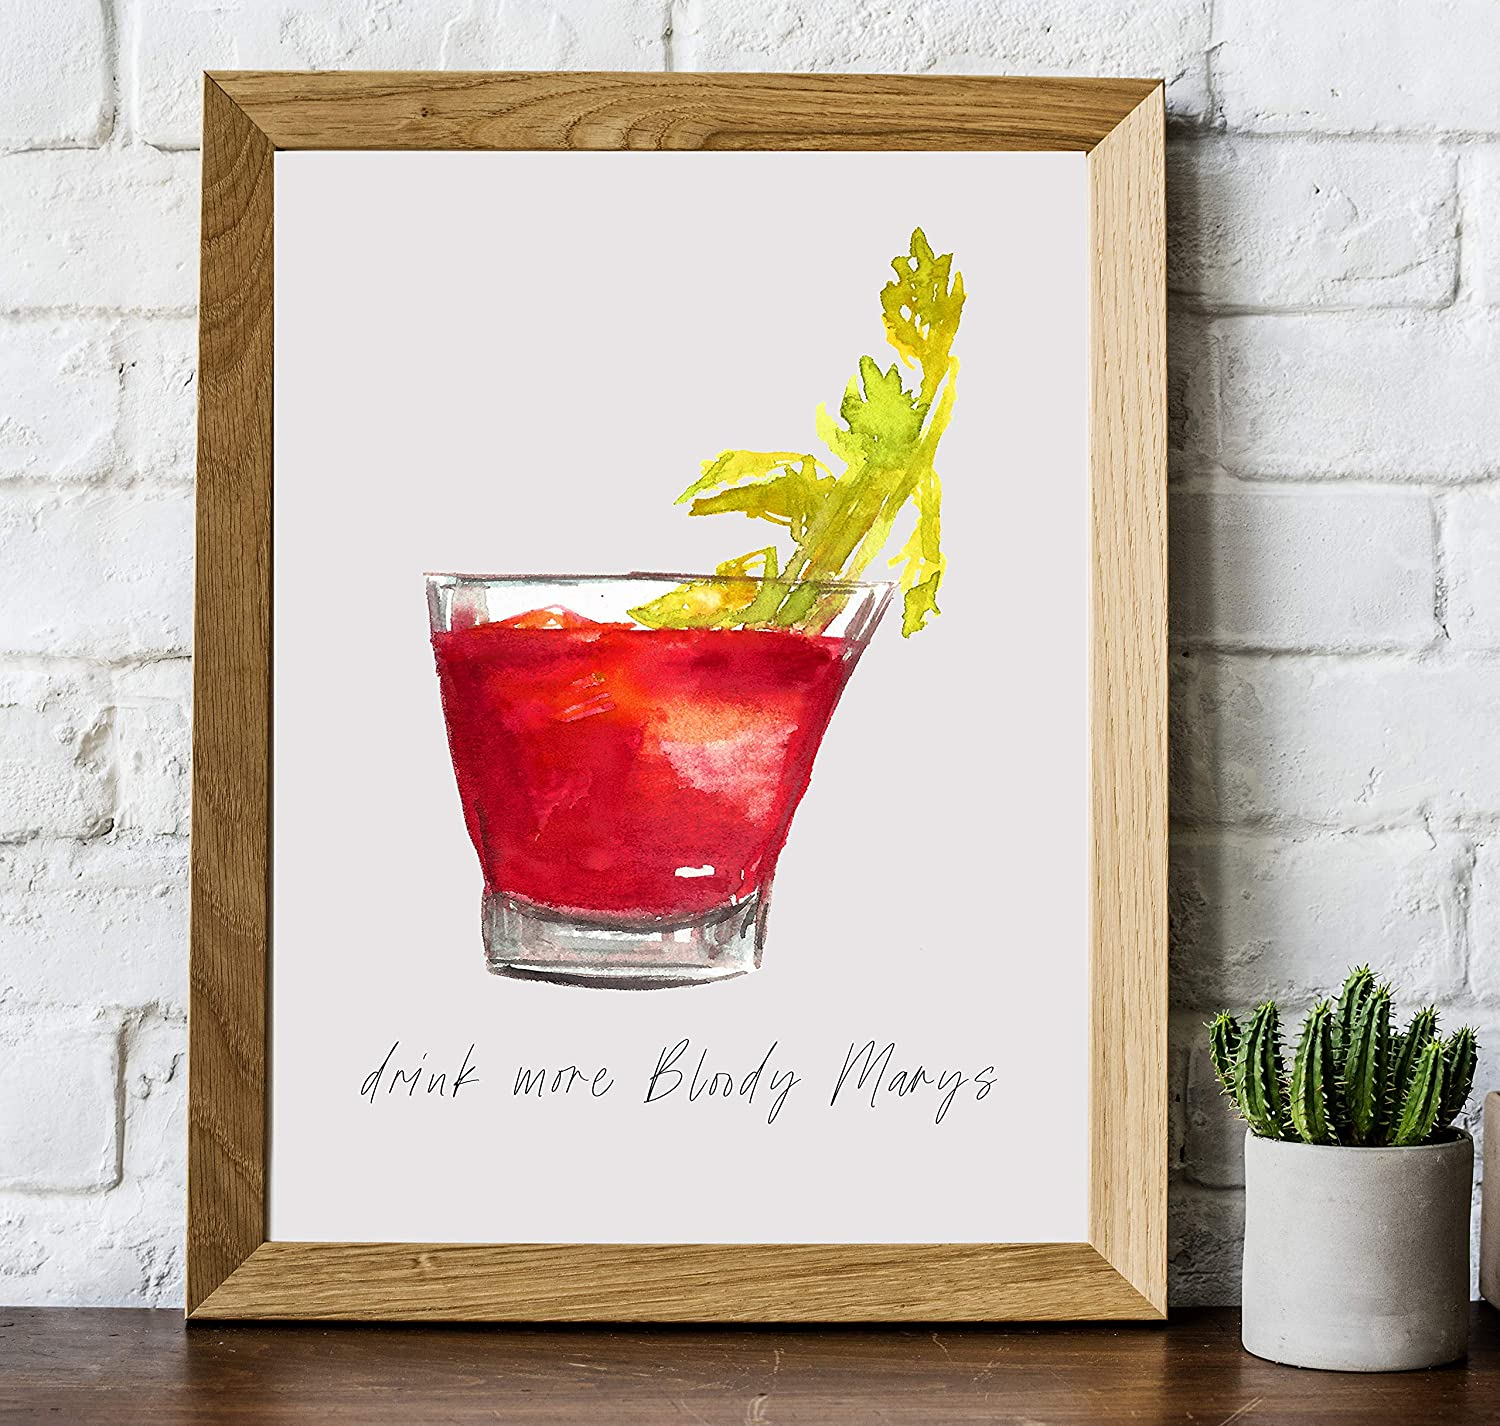 Amazon Com Bloody Mary Cocktail Bar Wall Art 8x10 Unframed Decor Print Makes A Great Gift For Kitchen Home Wet Bar Martini Wine Or Tiki Bar Drink More Bloody Marys Handmade